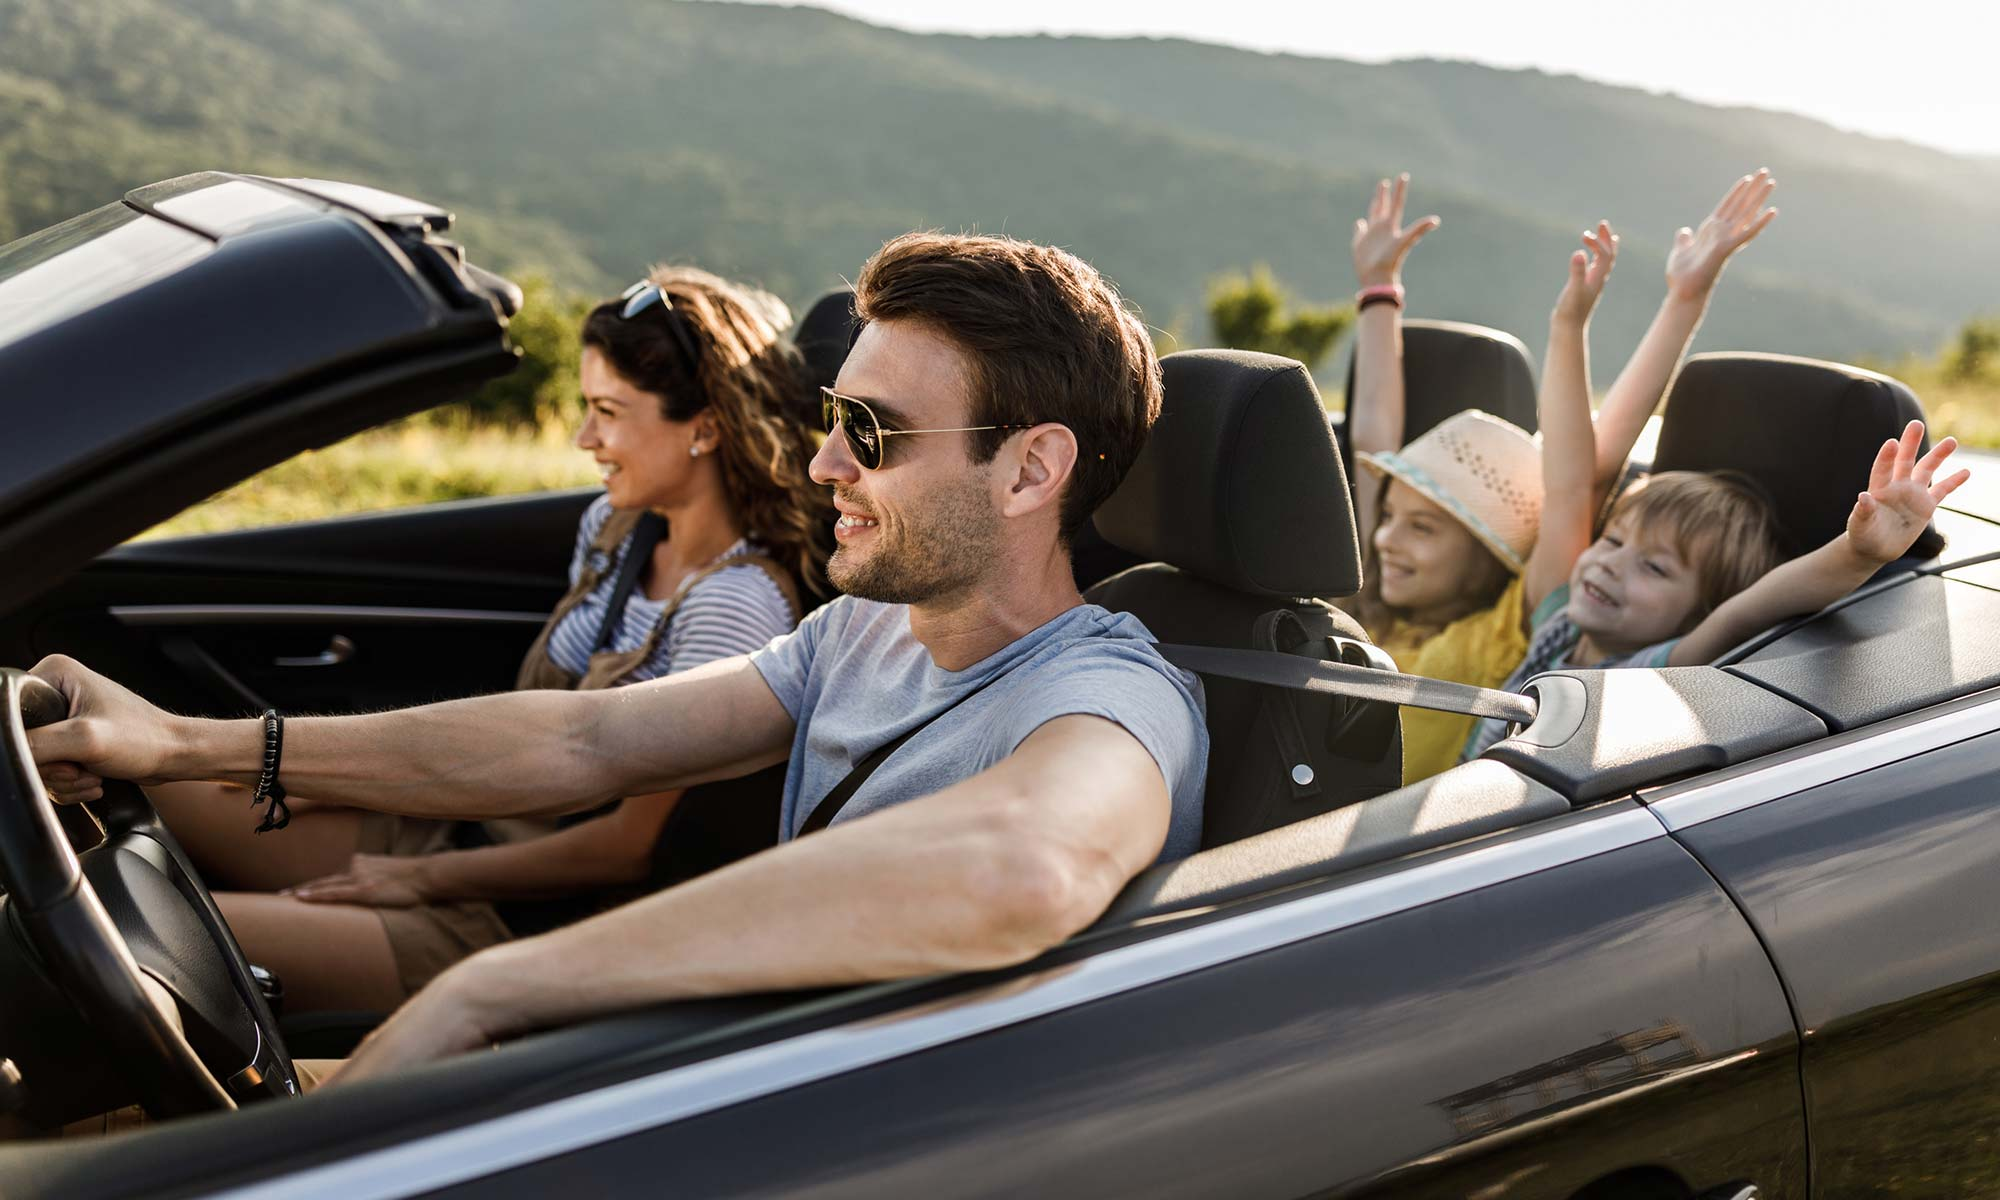 A family of four driving down the road in a convertible on a sunny day.